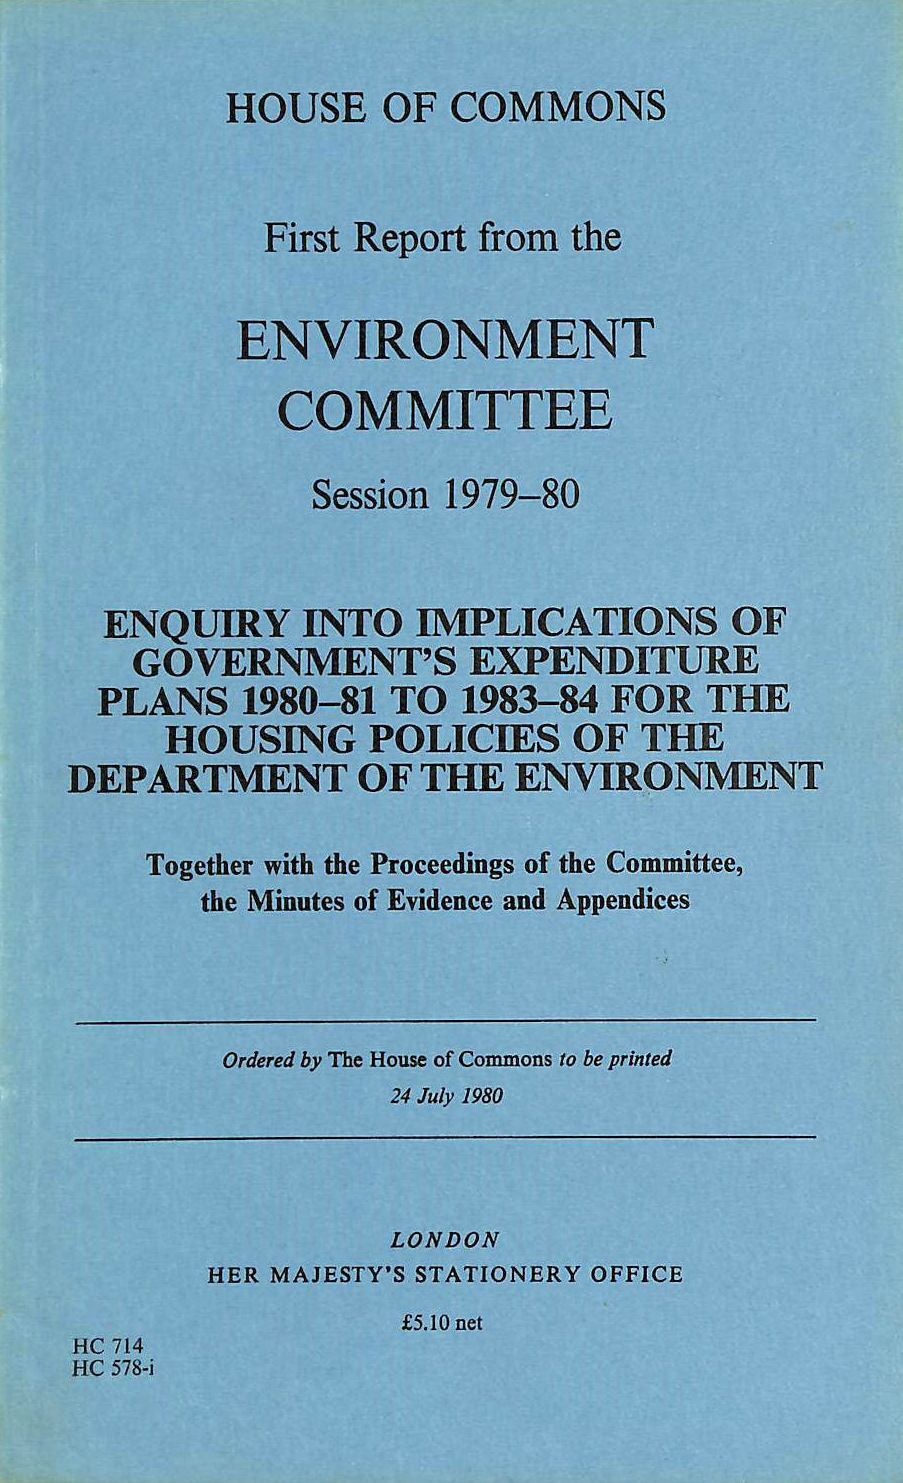 Image for First report from the Environment Committee, session 1979-80: Enquiry into implications of government's expenditure plans 1980-81 to 1983-84 for the the minutes of evidence and appendices (HC)